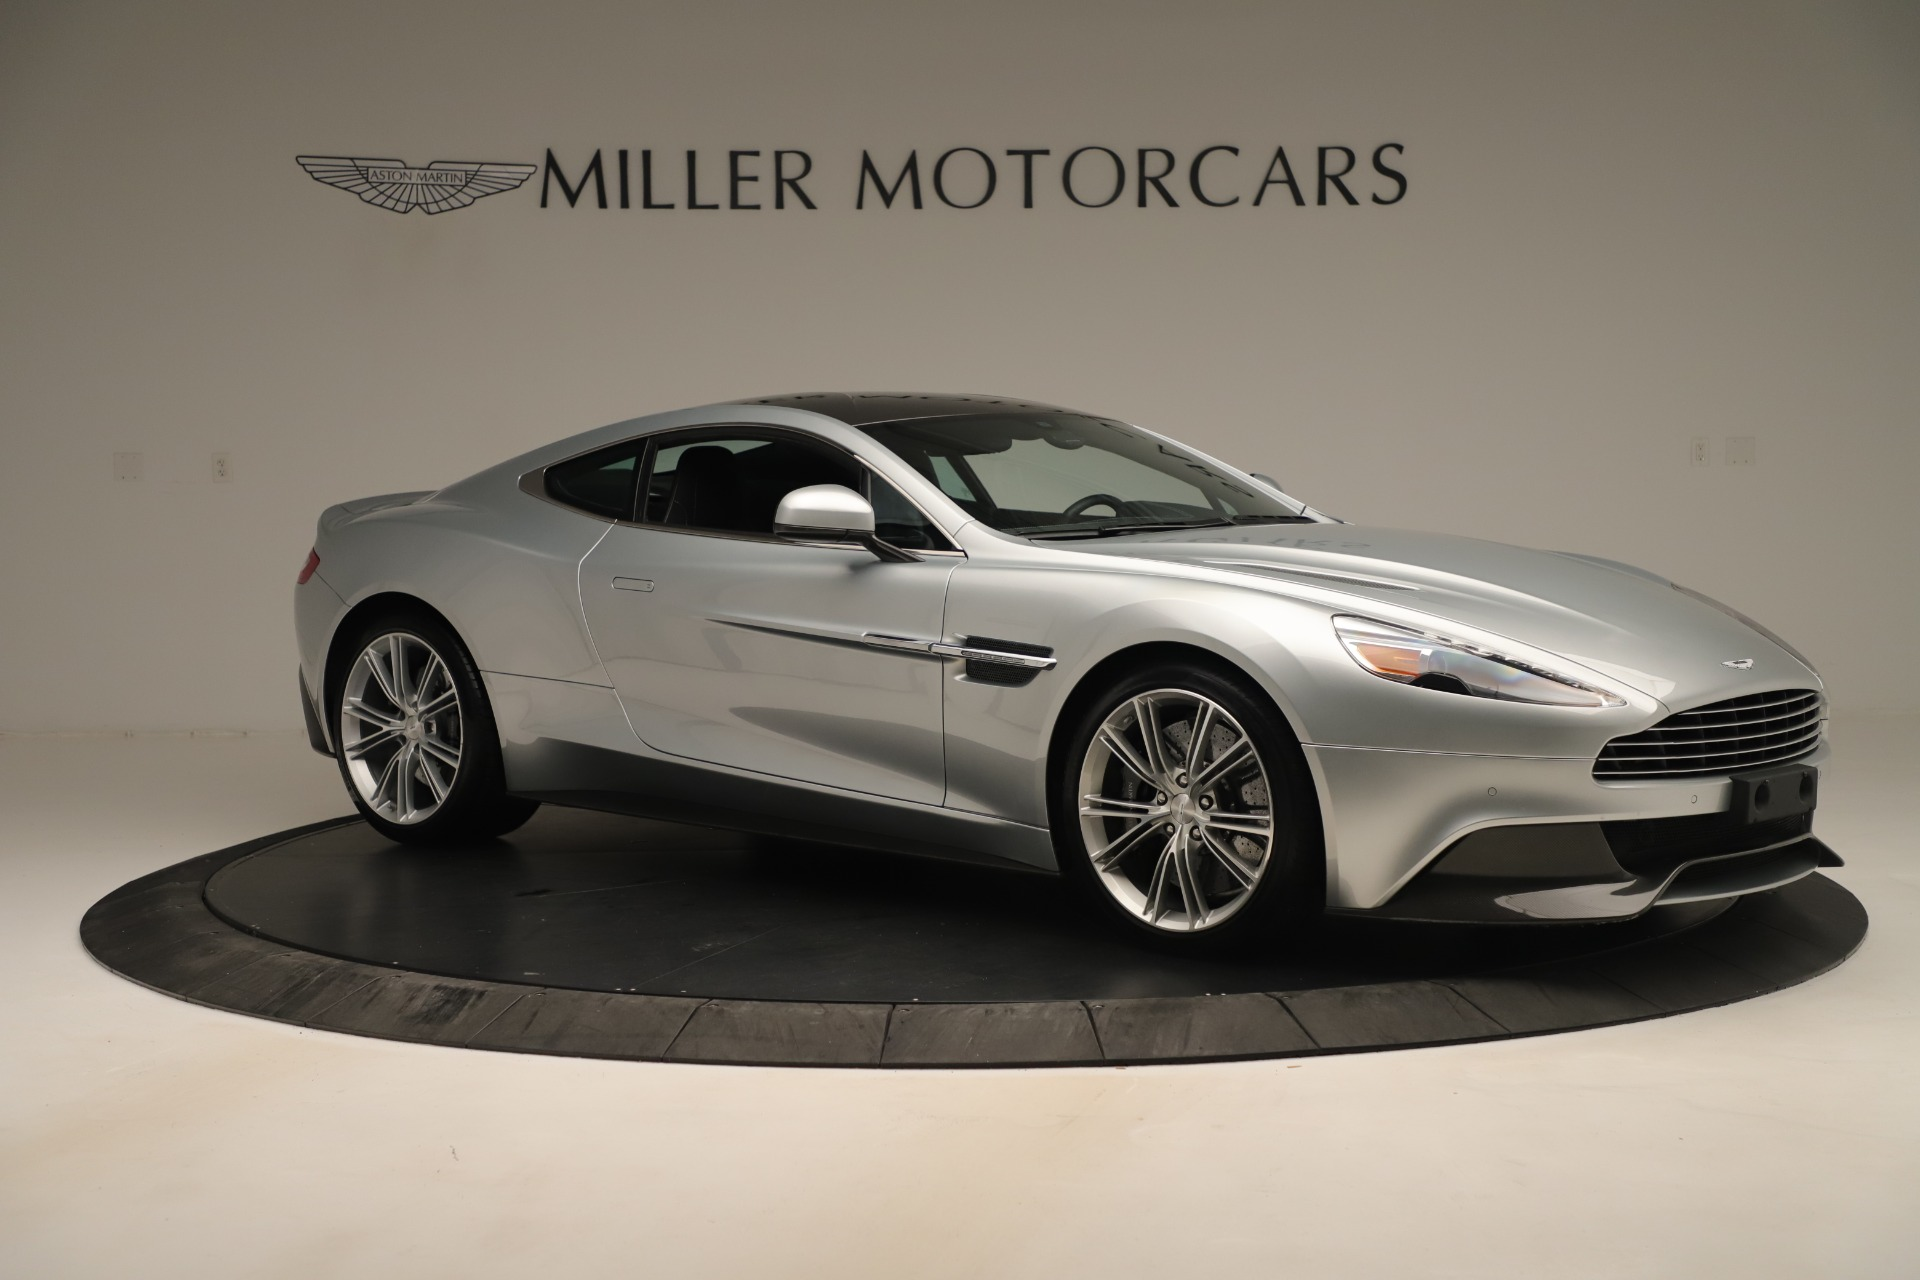 Used 2014 Aston Martin Vanquish Coupe For Sale In Greenwich, CT 3445_p9